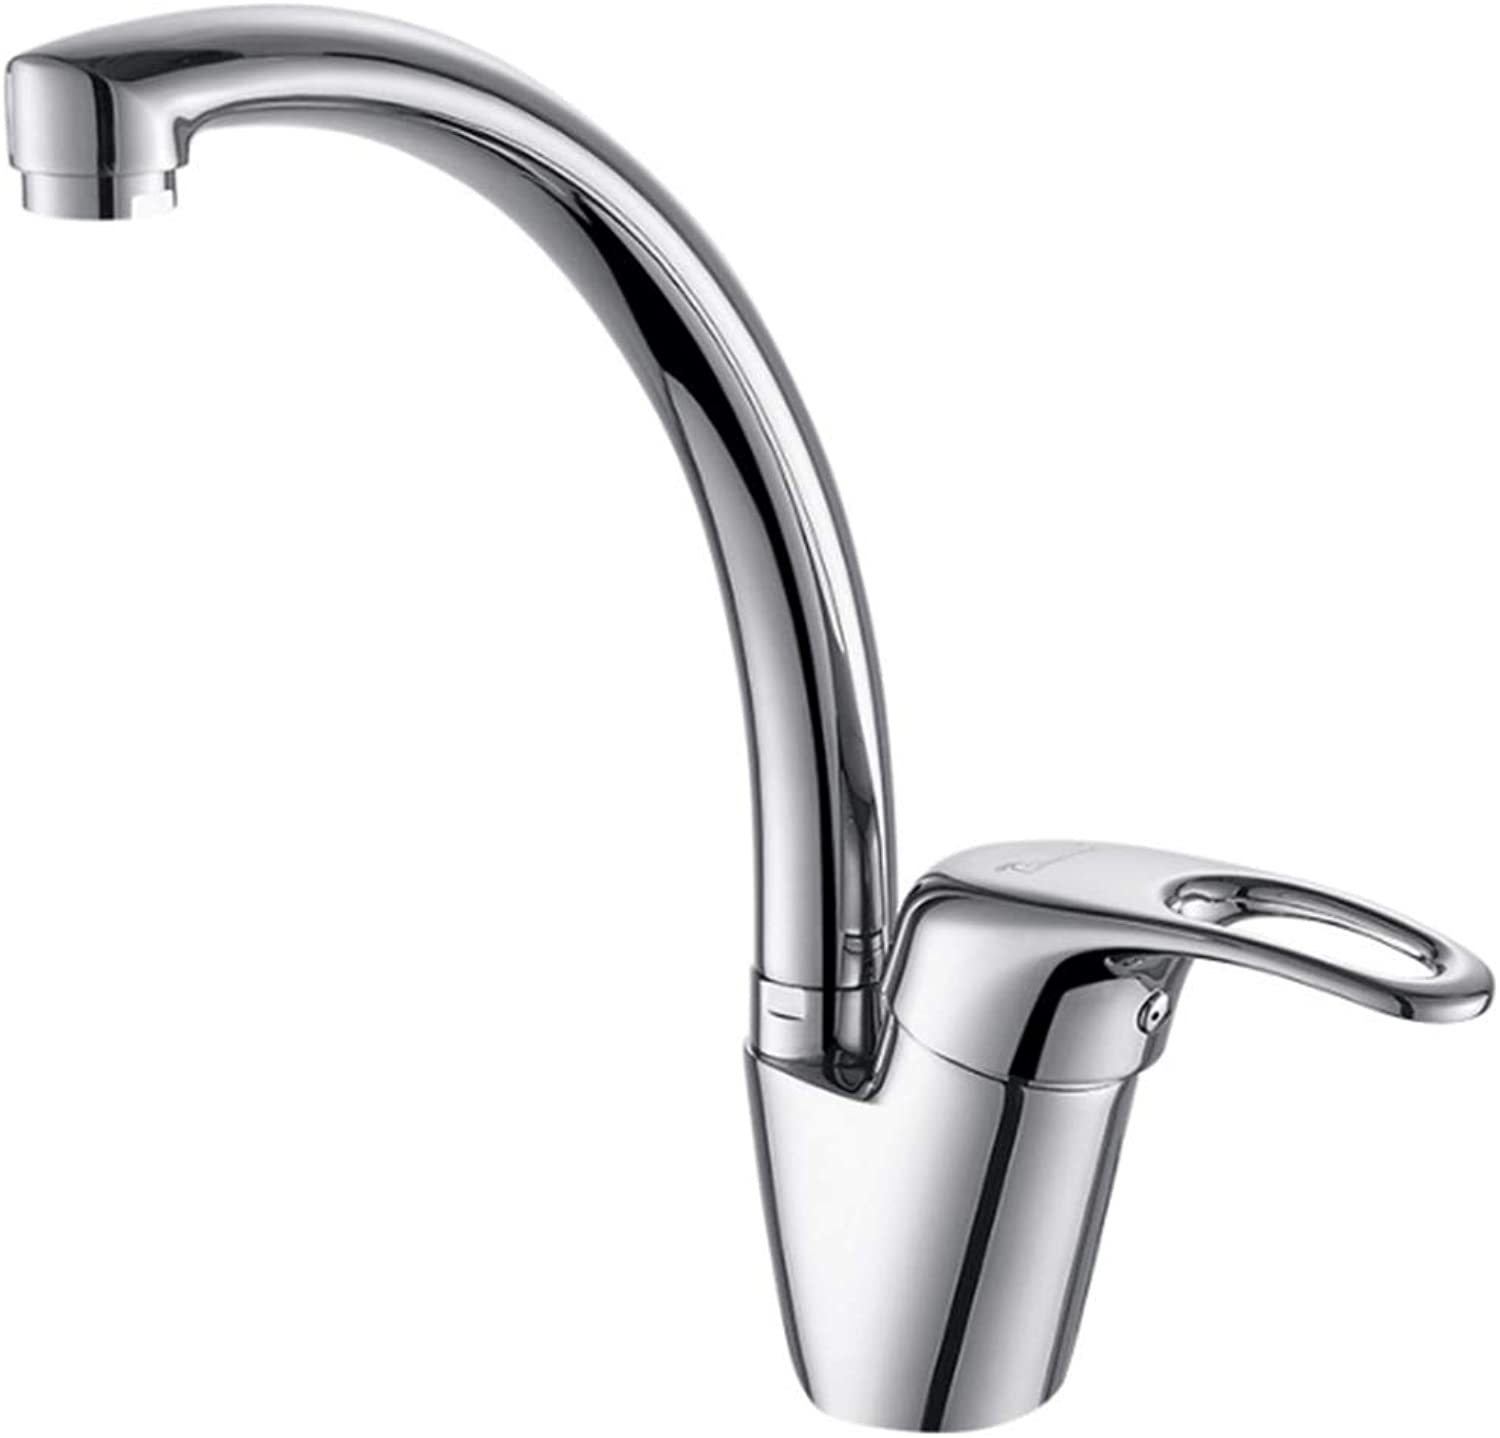 Copper Kitchen Faucet Classic Cold and hot Flume wash Vegetable Basin Faucet